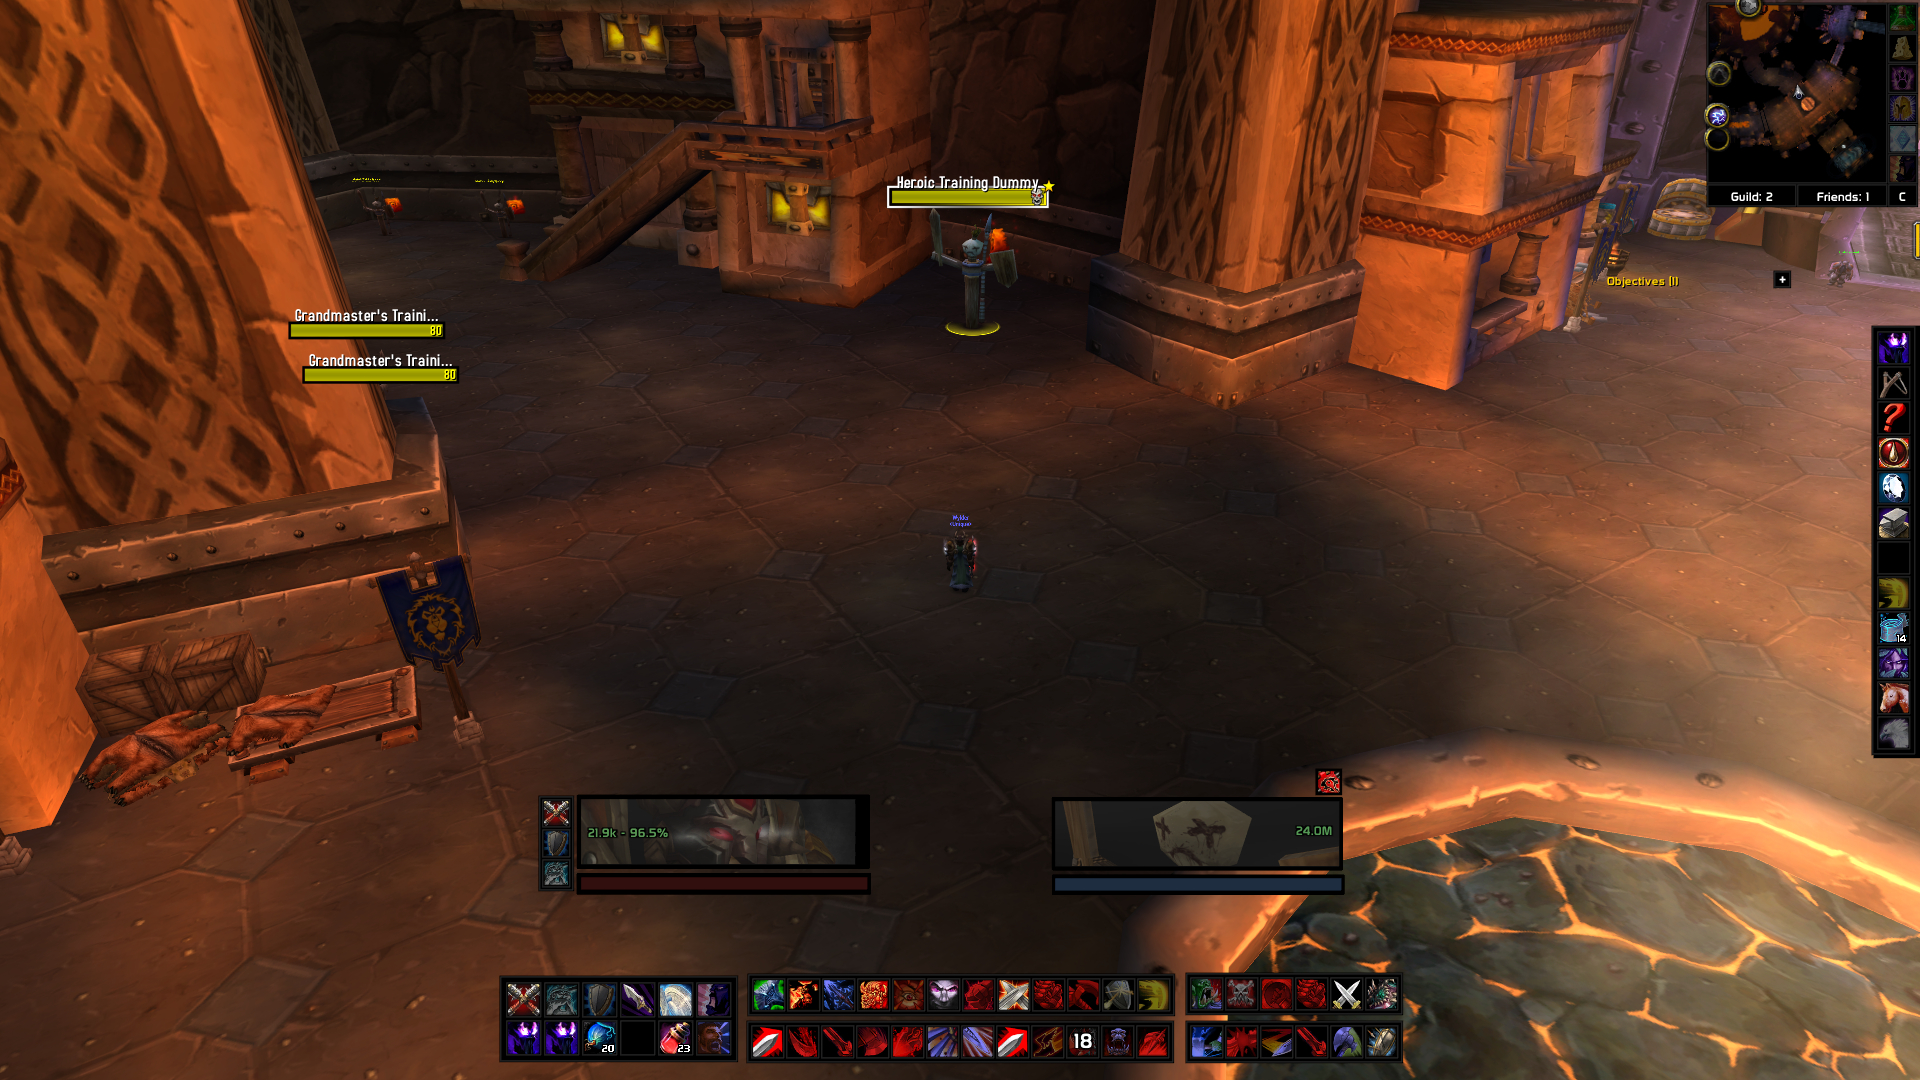 Show off your UI! - Page 3 - Interface & Macros - Sunwell